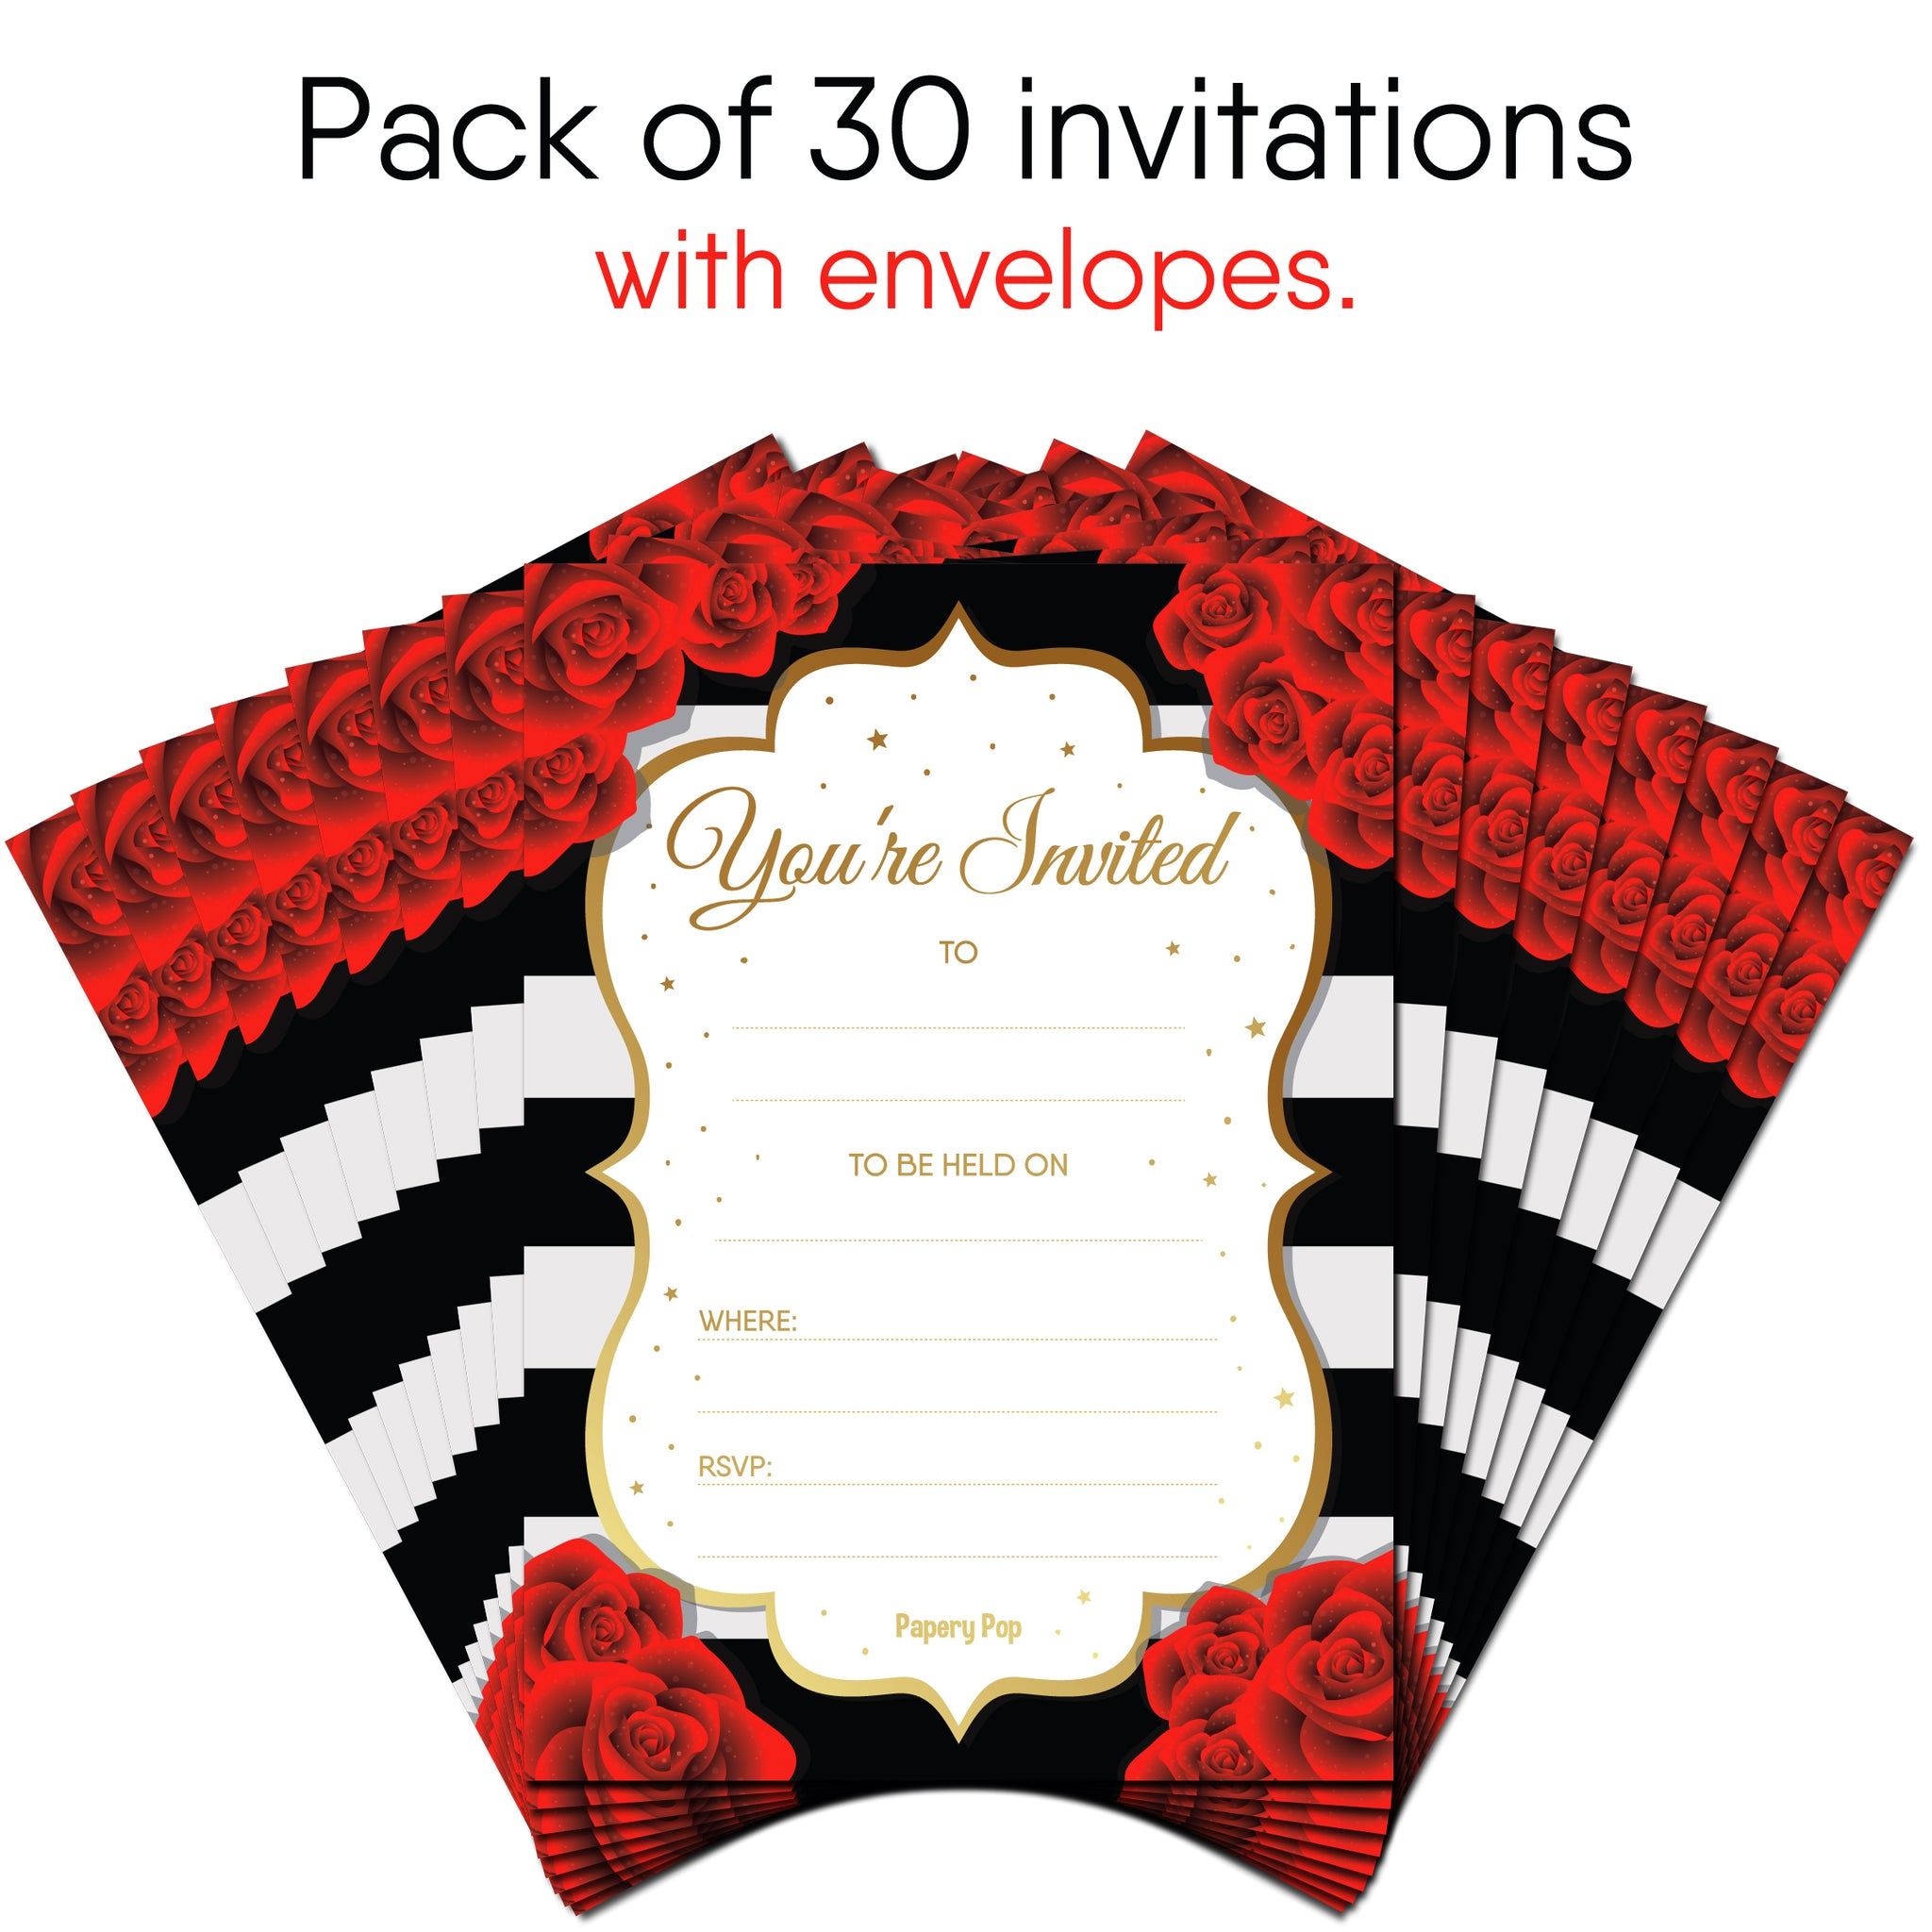 30 invitations with envelopes any occasions bridal shower wedding shower bachelorette party